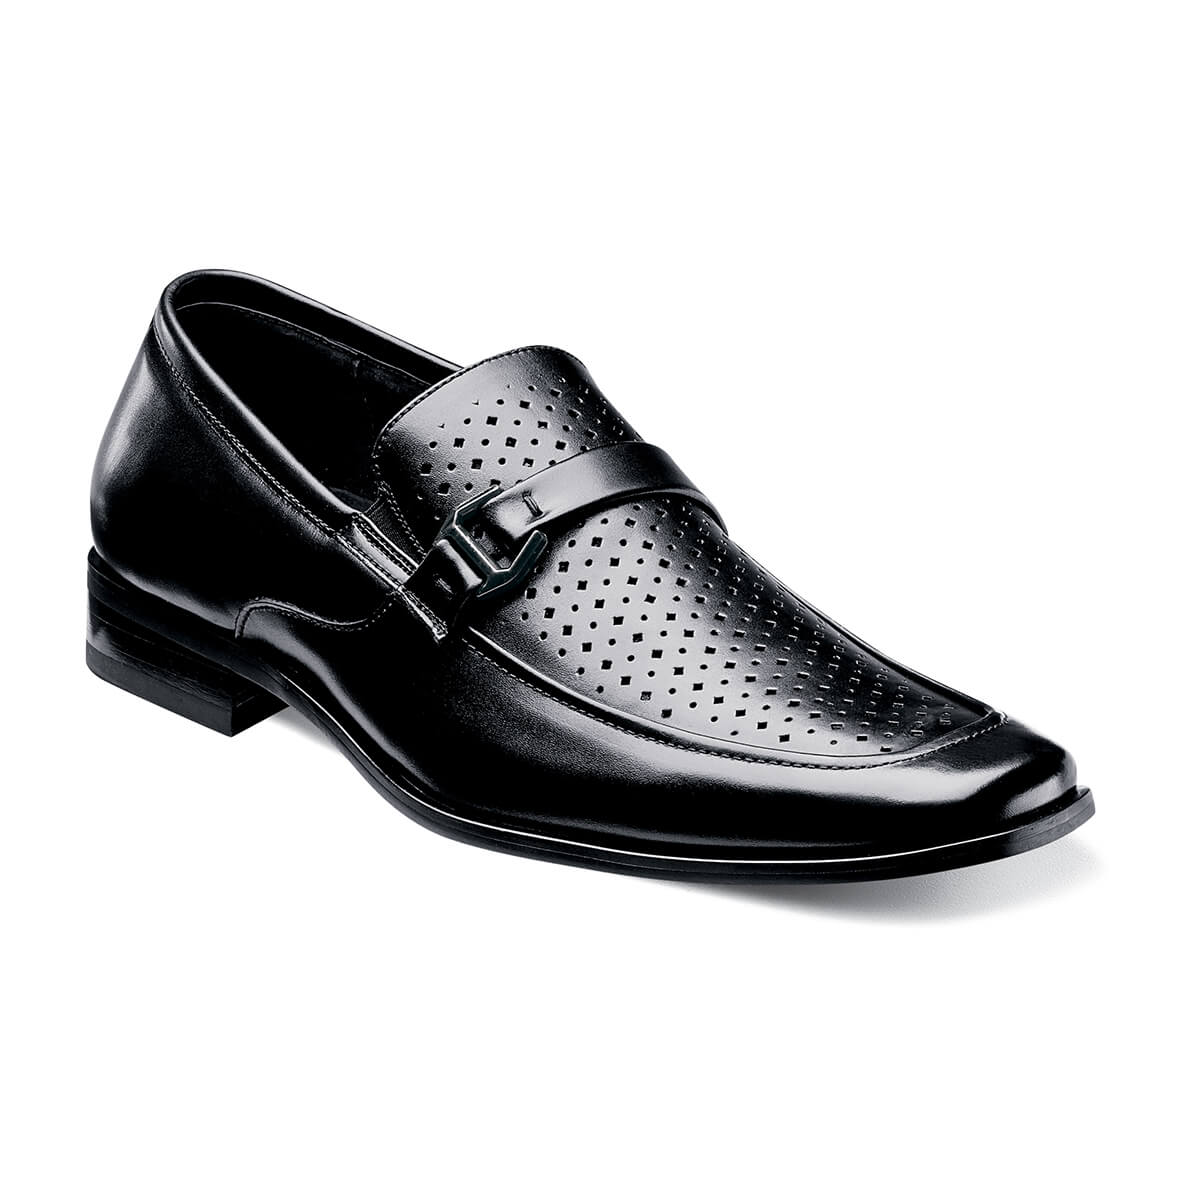 Albach Leather Slip On Shoes - Dapperfam.com